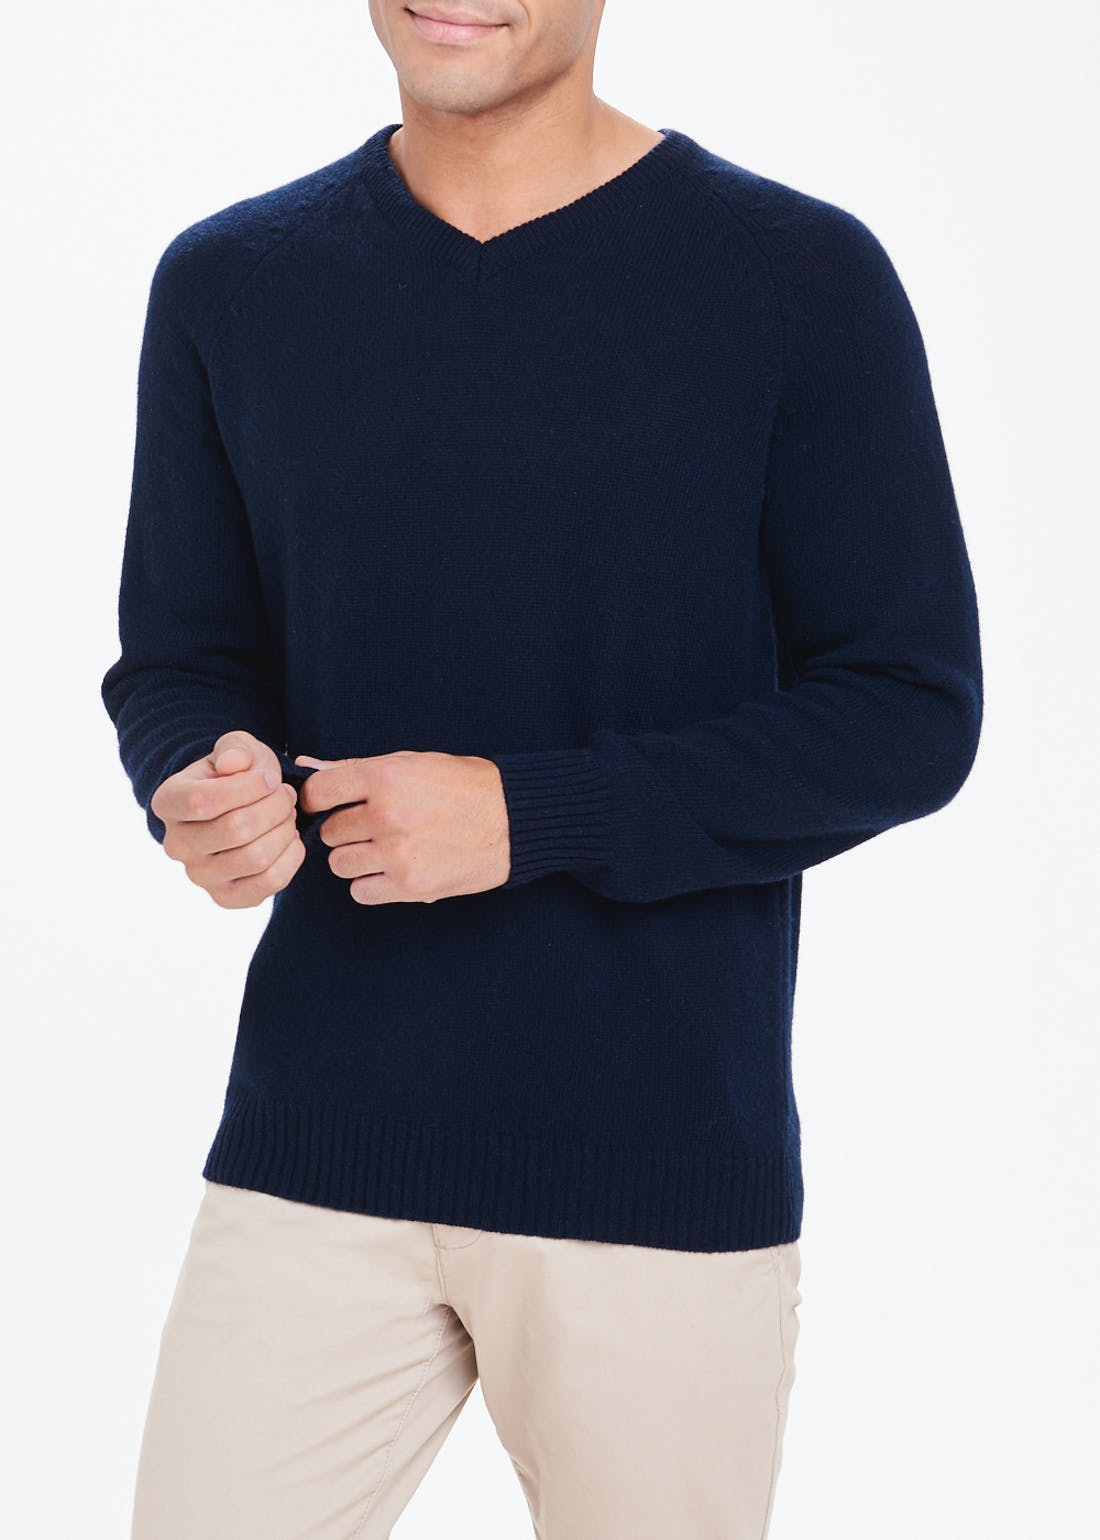 100% Lambswool Jumper